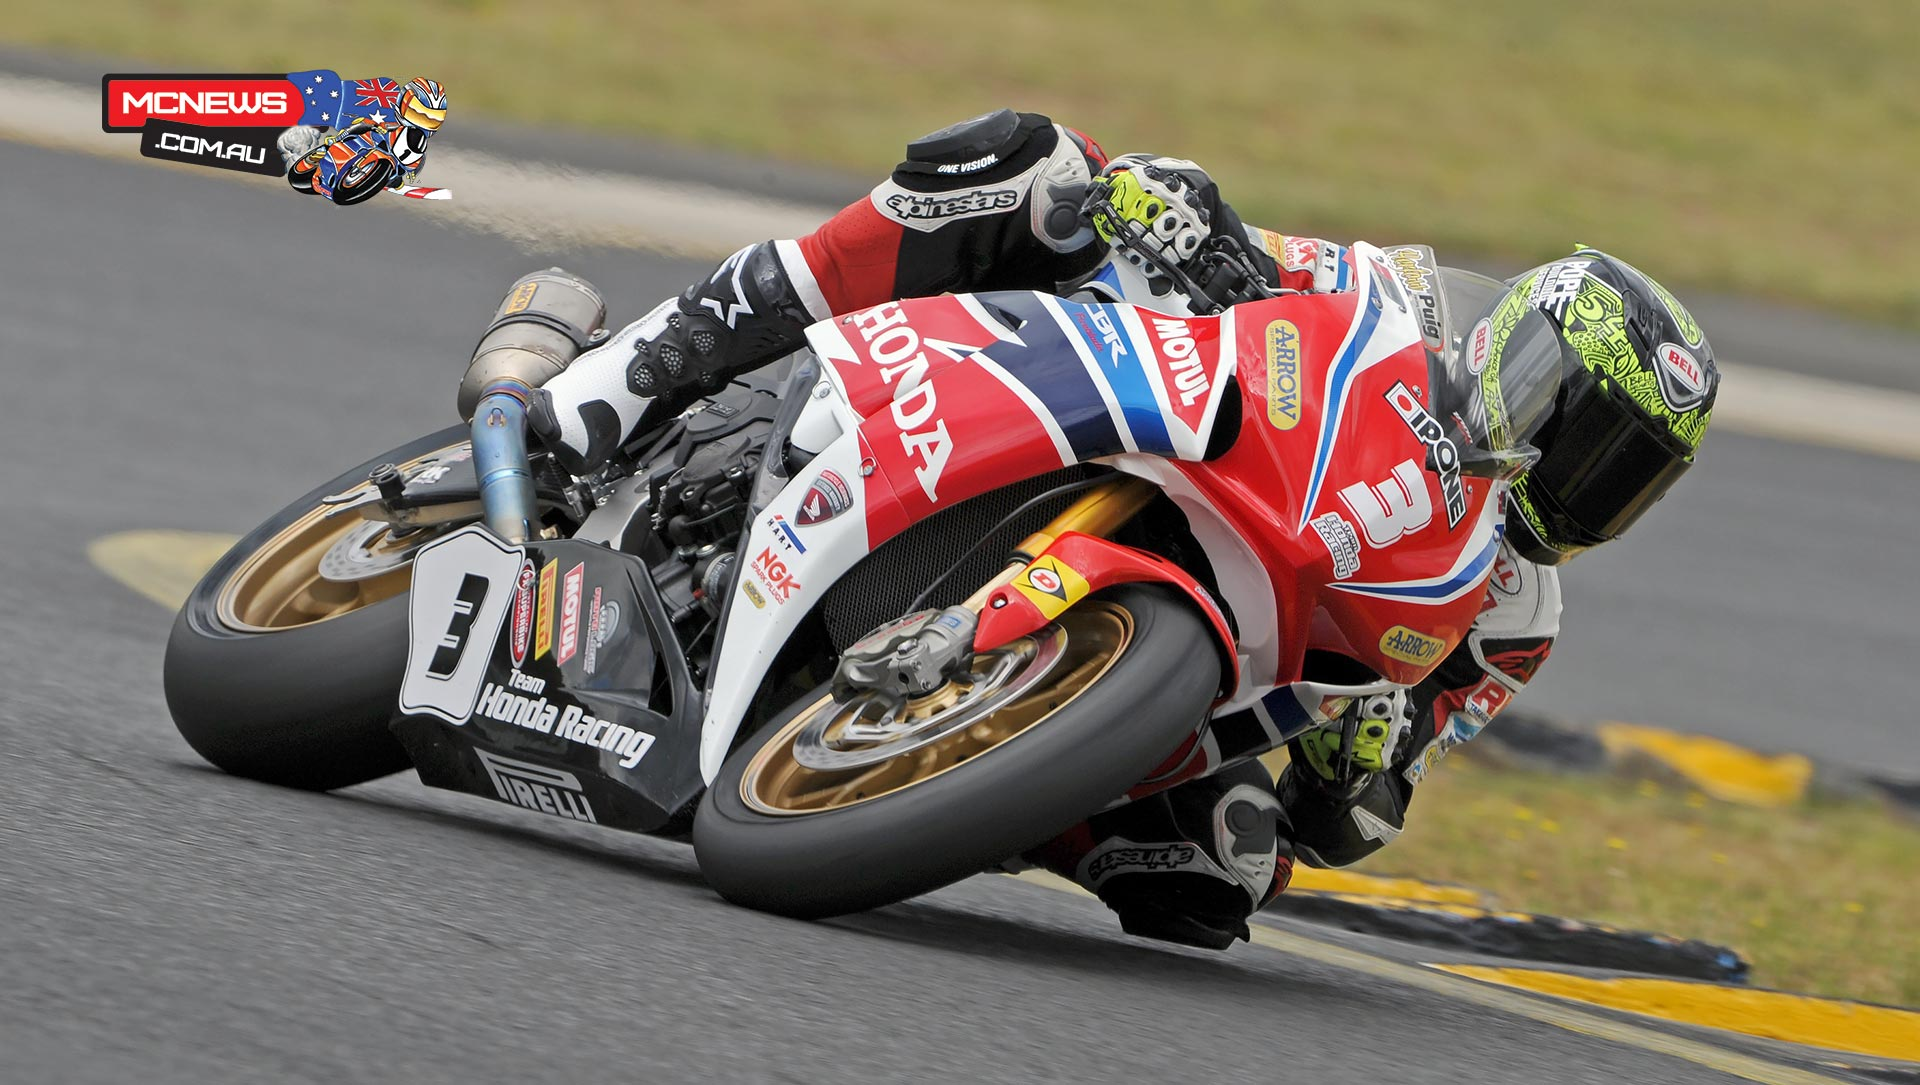 Troy Herfoss in action at Sydney Motorsports Park this morning. Image by Keith Muir